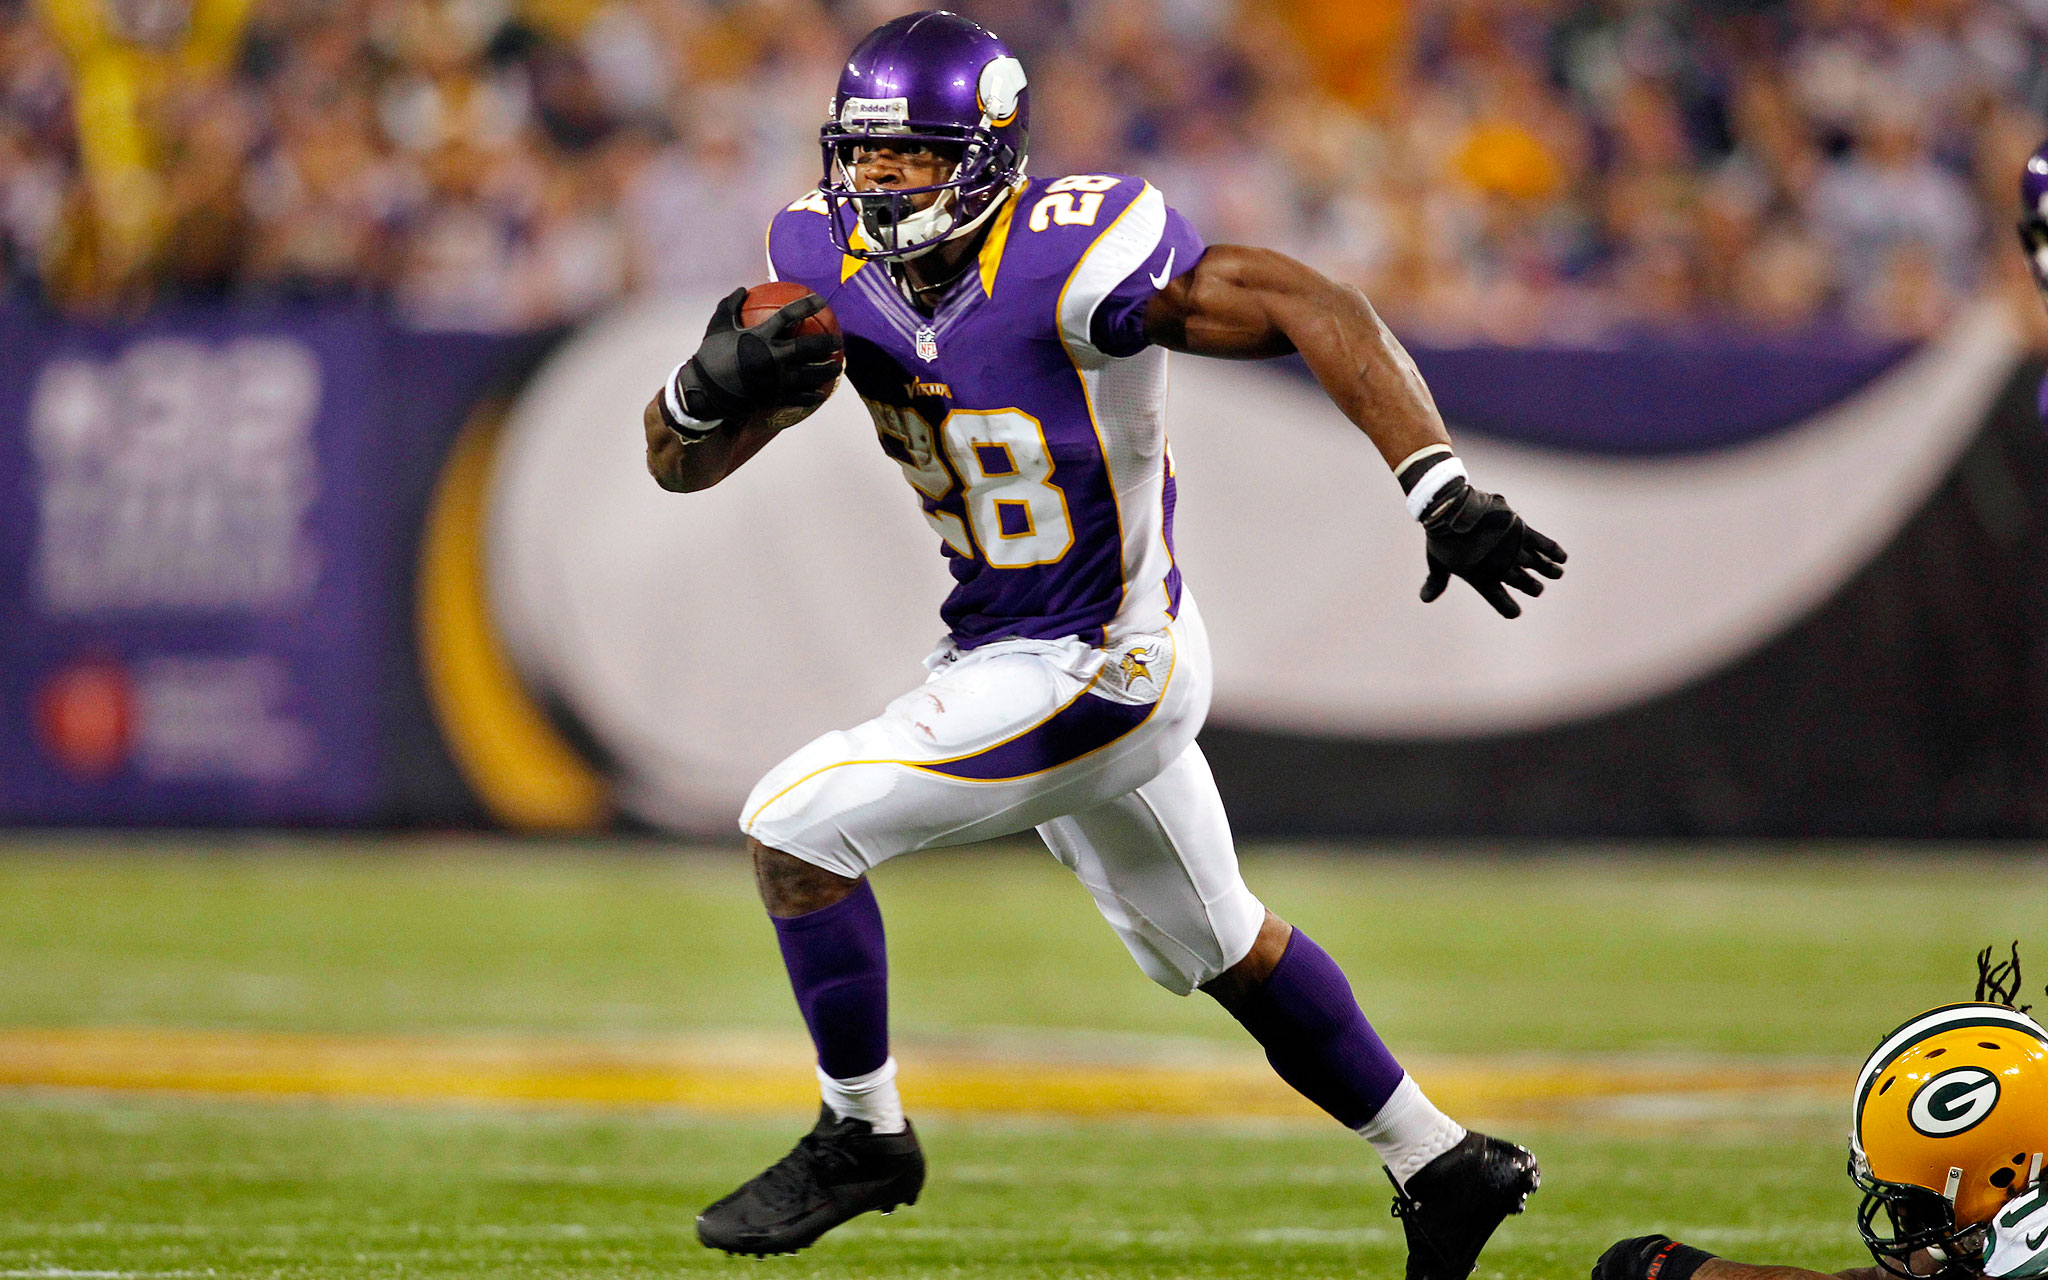 Hoping to rehab his knee, Adrian Peterson admitted he used the Wii to help heal quicker last season (Credit: USA Today)